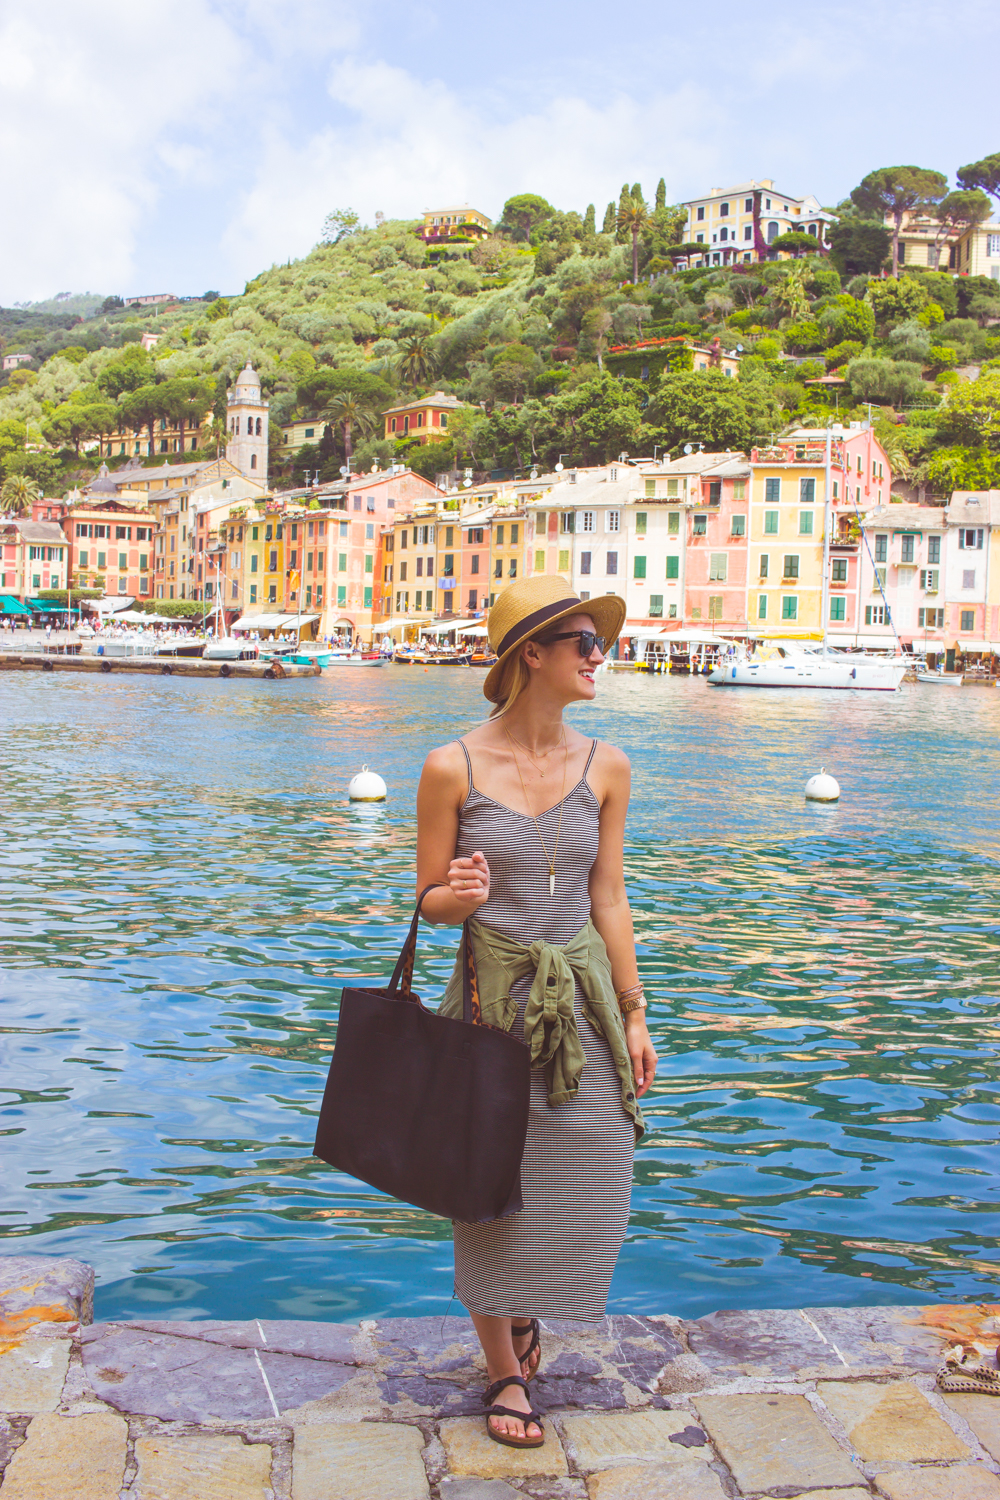 livvyland-blog-olivia-watson-austin-texas-fashion-travel-blogger-princess-royal-mediterranean-cruise-portofino-cinque-terre-italy-what-to-do-see-eat-8